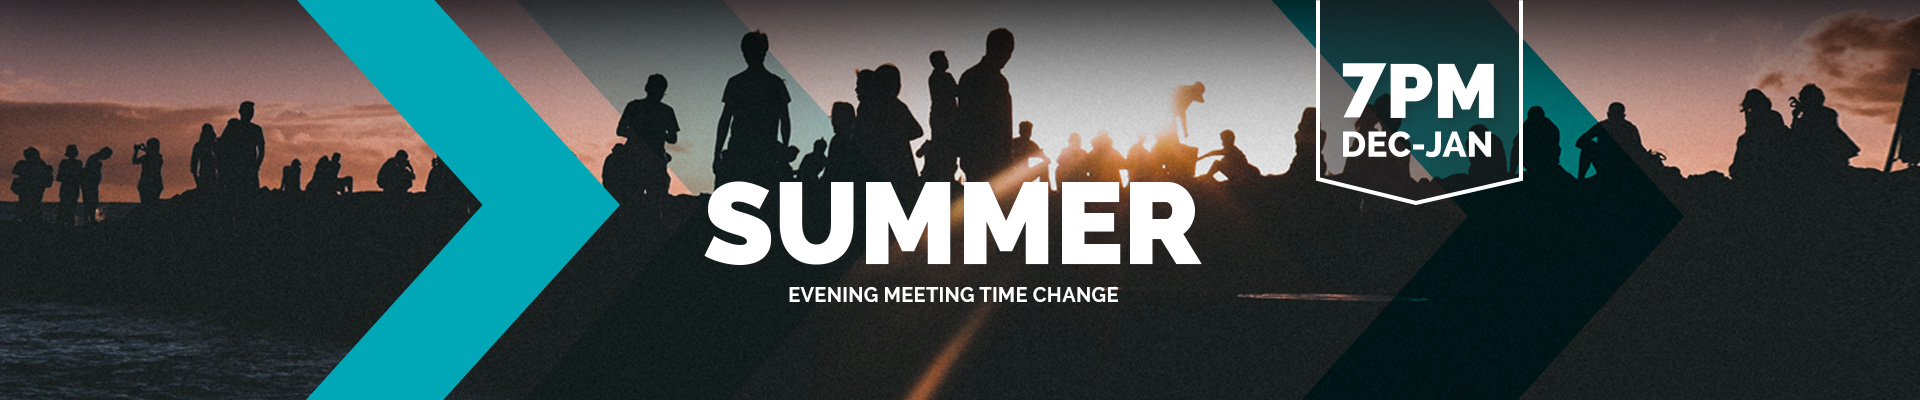 Summer Time Change to 7pm